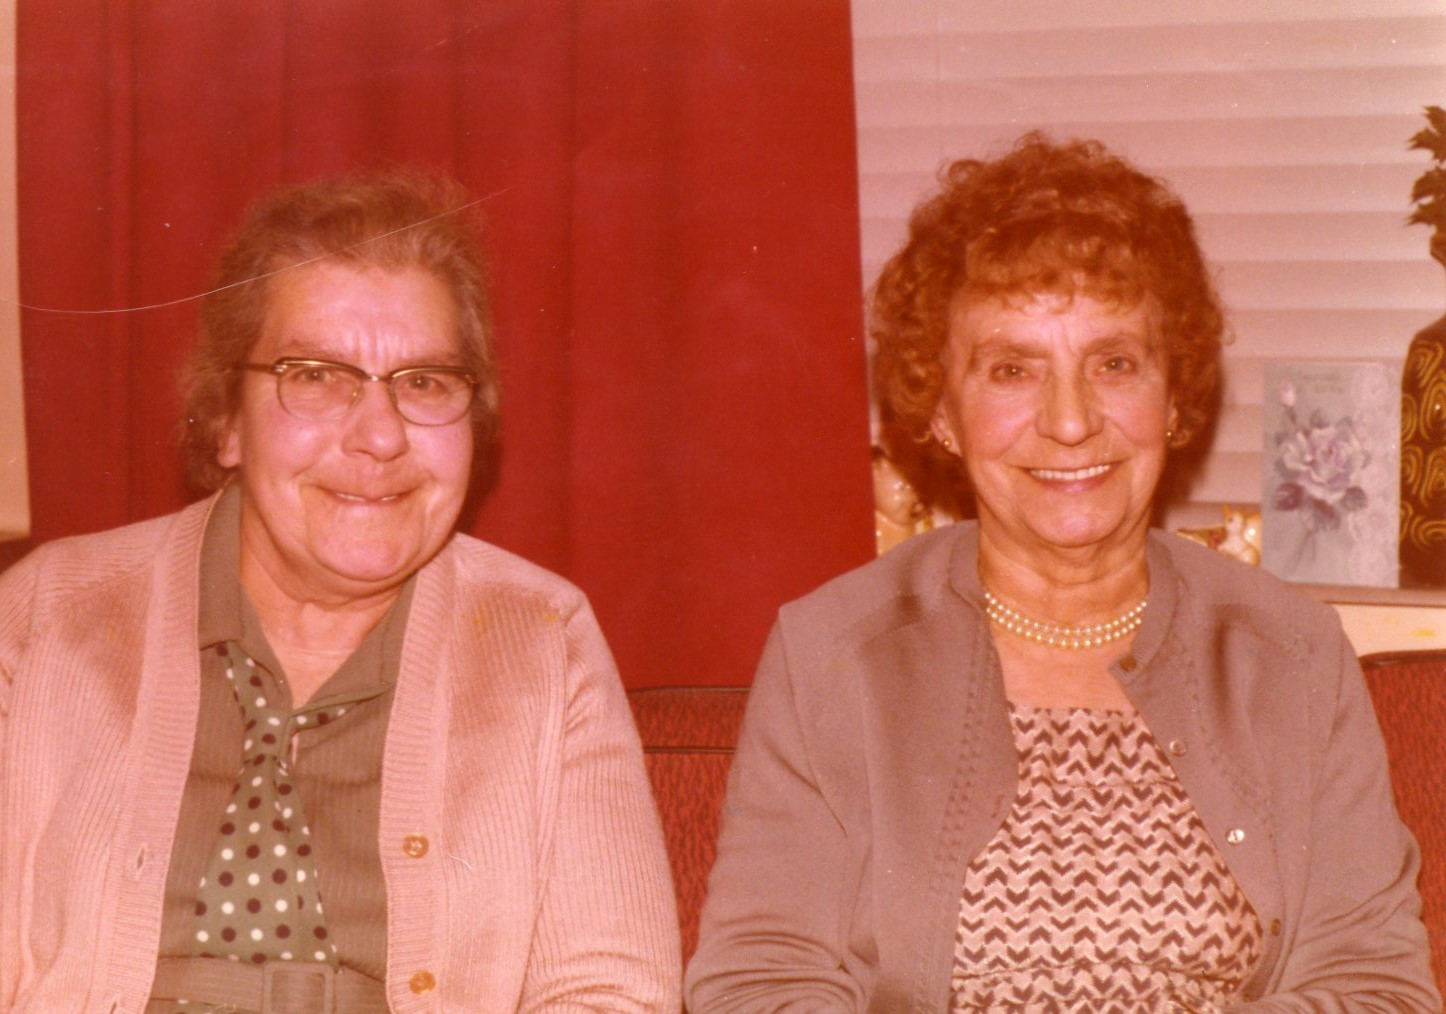 Gladys Rose (on the right), with her younger sister Jessie Rose, c.1980